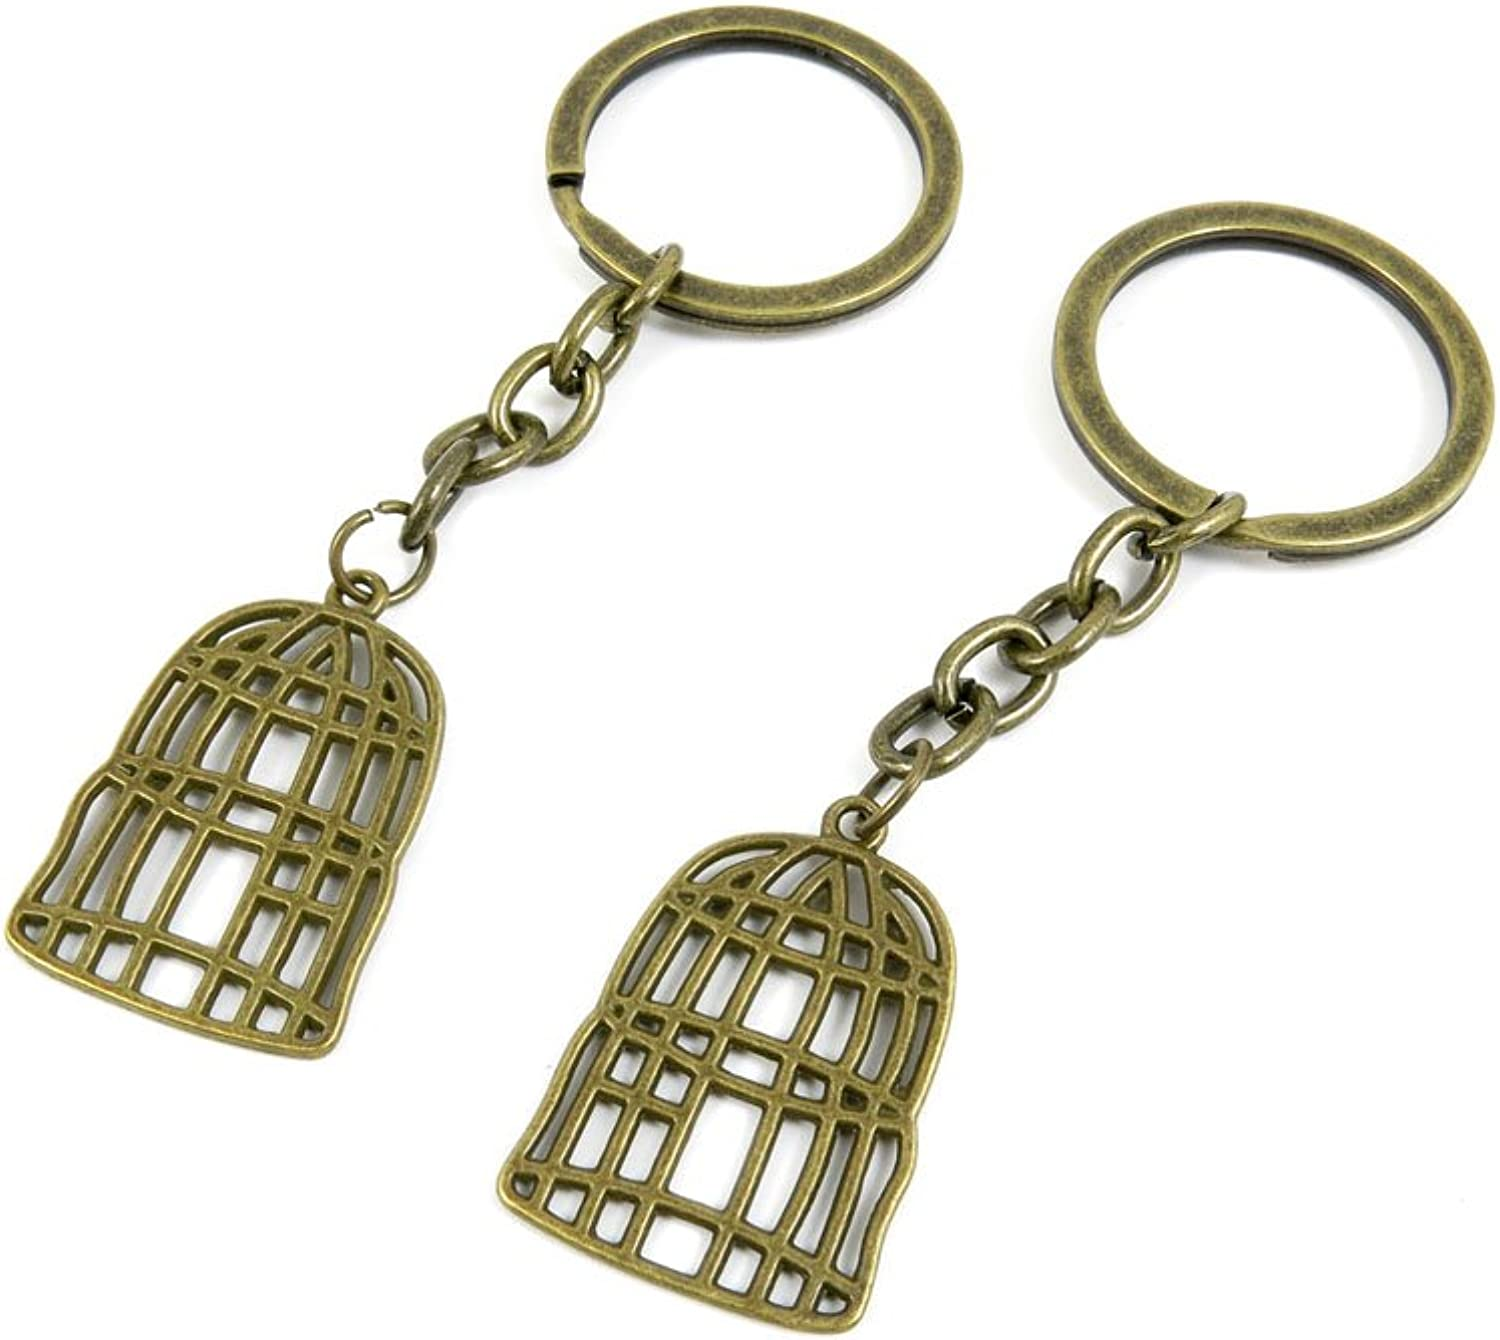 100 PCS Keyrings Keychains Key Ring Chains Tags Jewelry Findings Clasps Buckles Supplies T5UC9 Birdcage